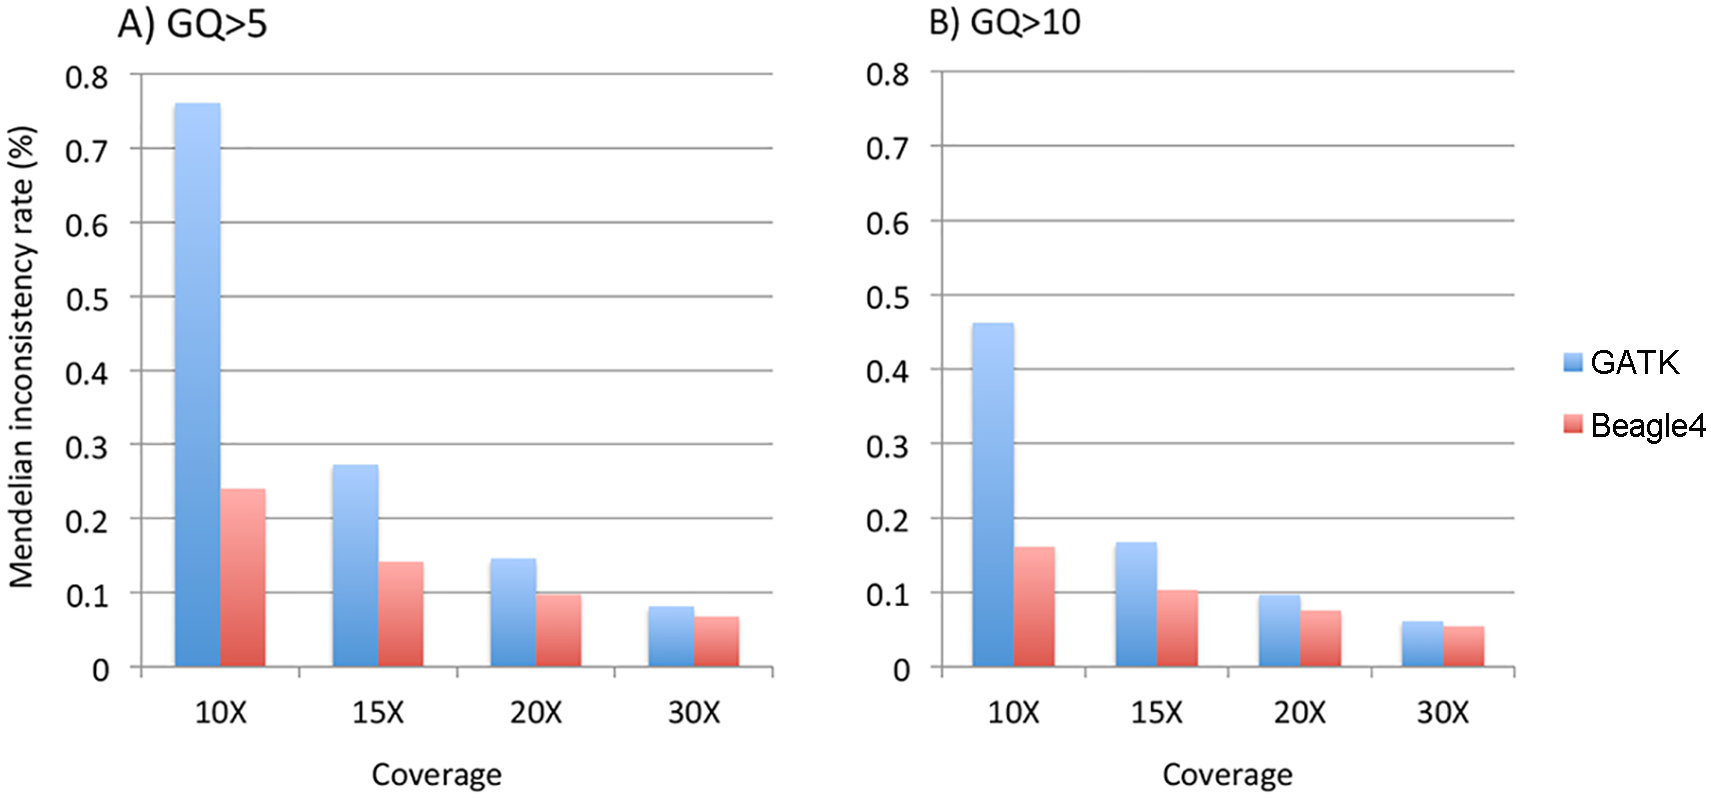 The average Mendelian inconsistency rates of Beagle4 and GATK calls per parents-offspring trio in the Nuc4 pedigrees at sequencing coverage of 10X, 15X, 20X when GQ = 5 (panel A) or GQ = 10 (panel B) was used to filter low quality genotypes.